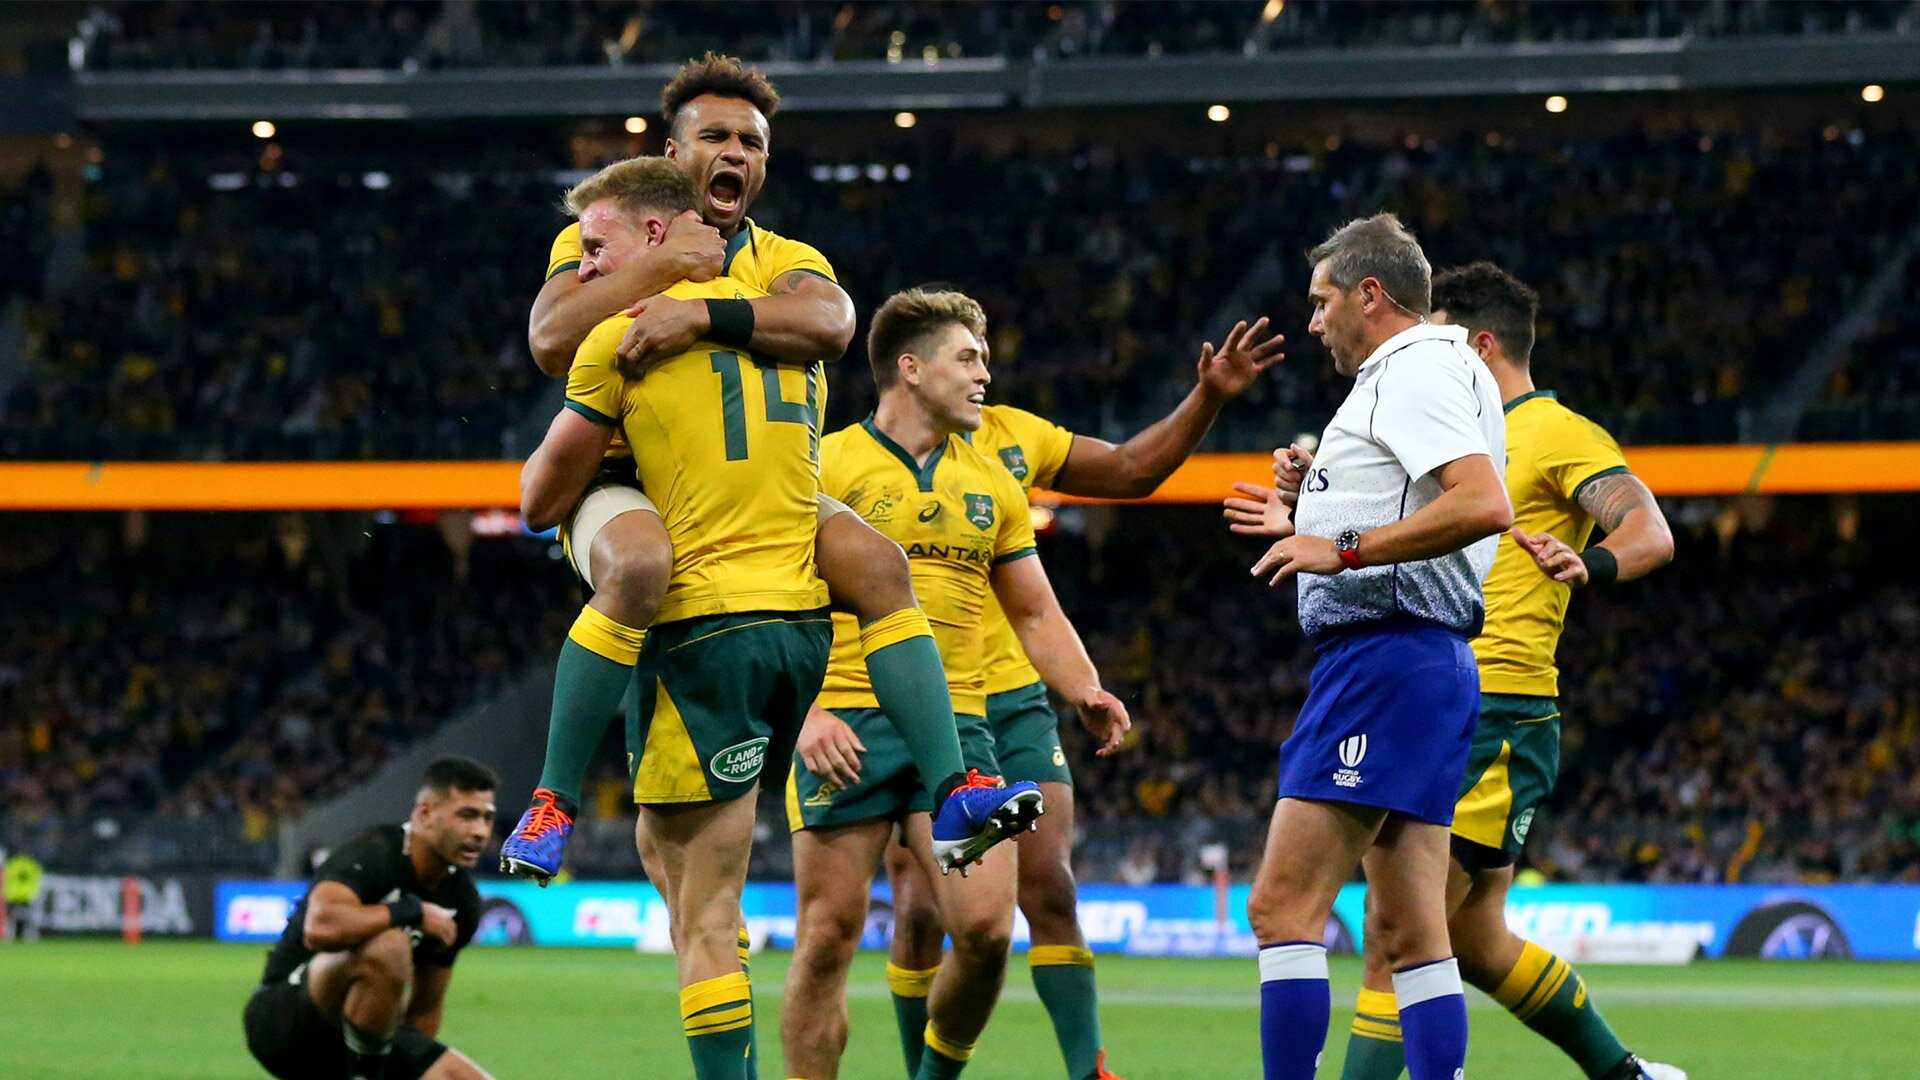 Wallabies to return to full pay for Rugby Championship on interim pay deal